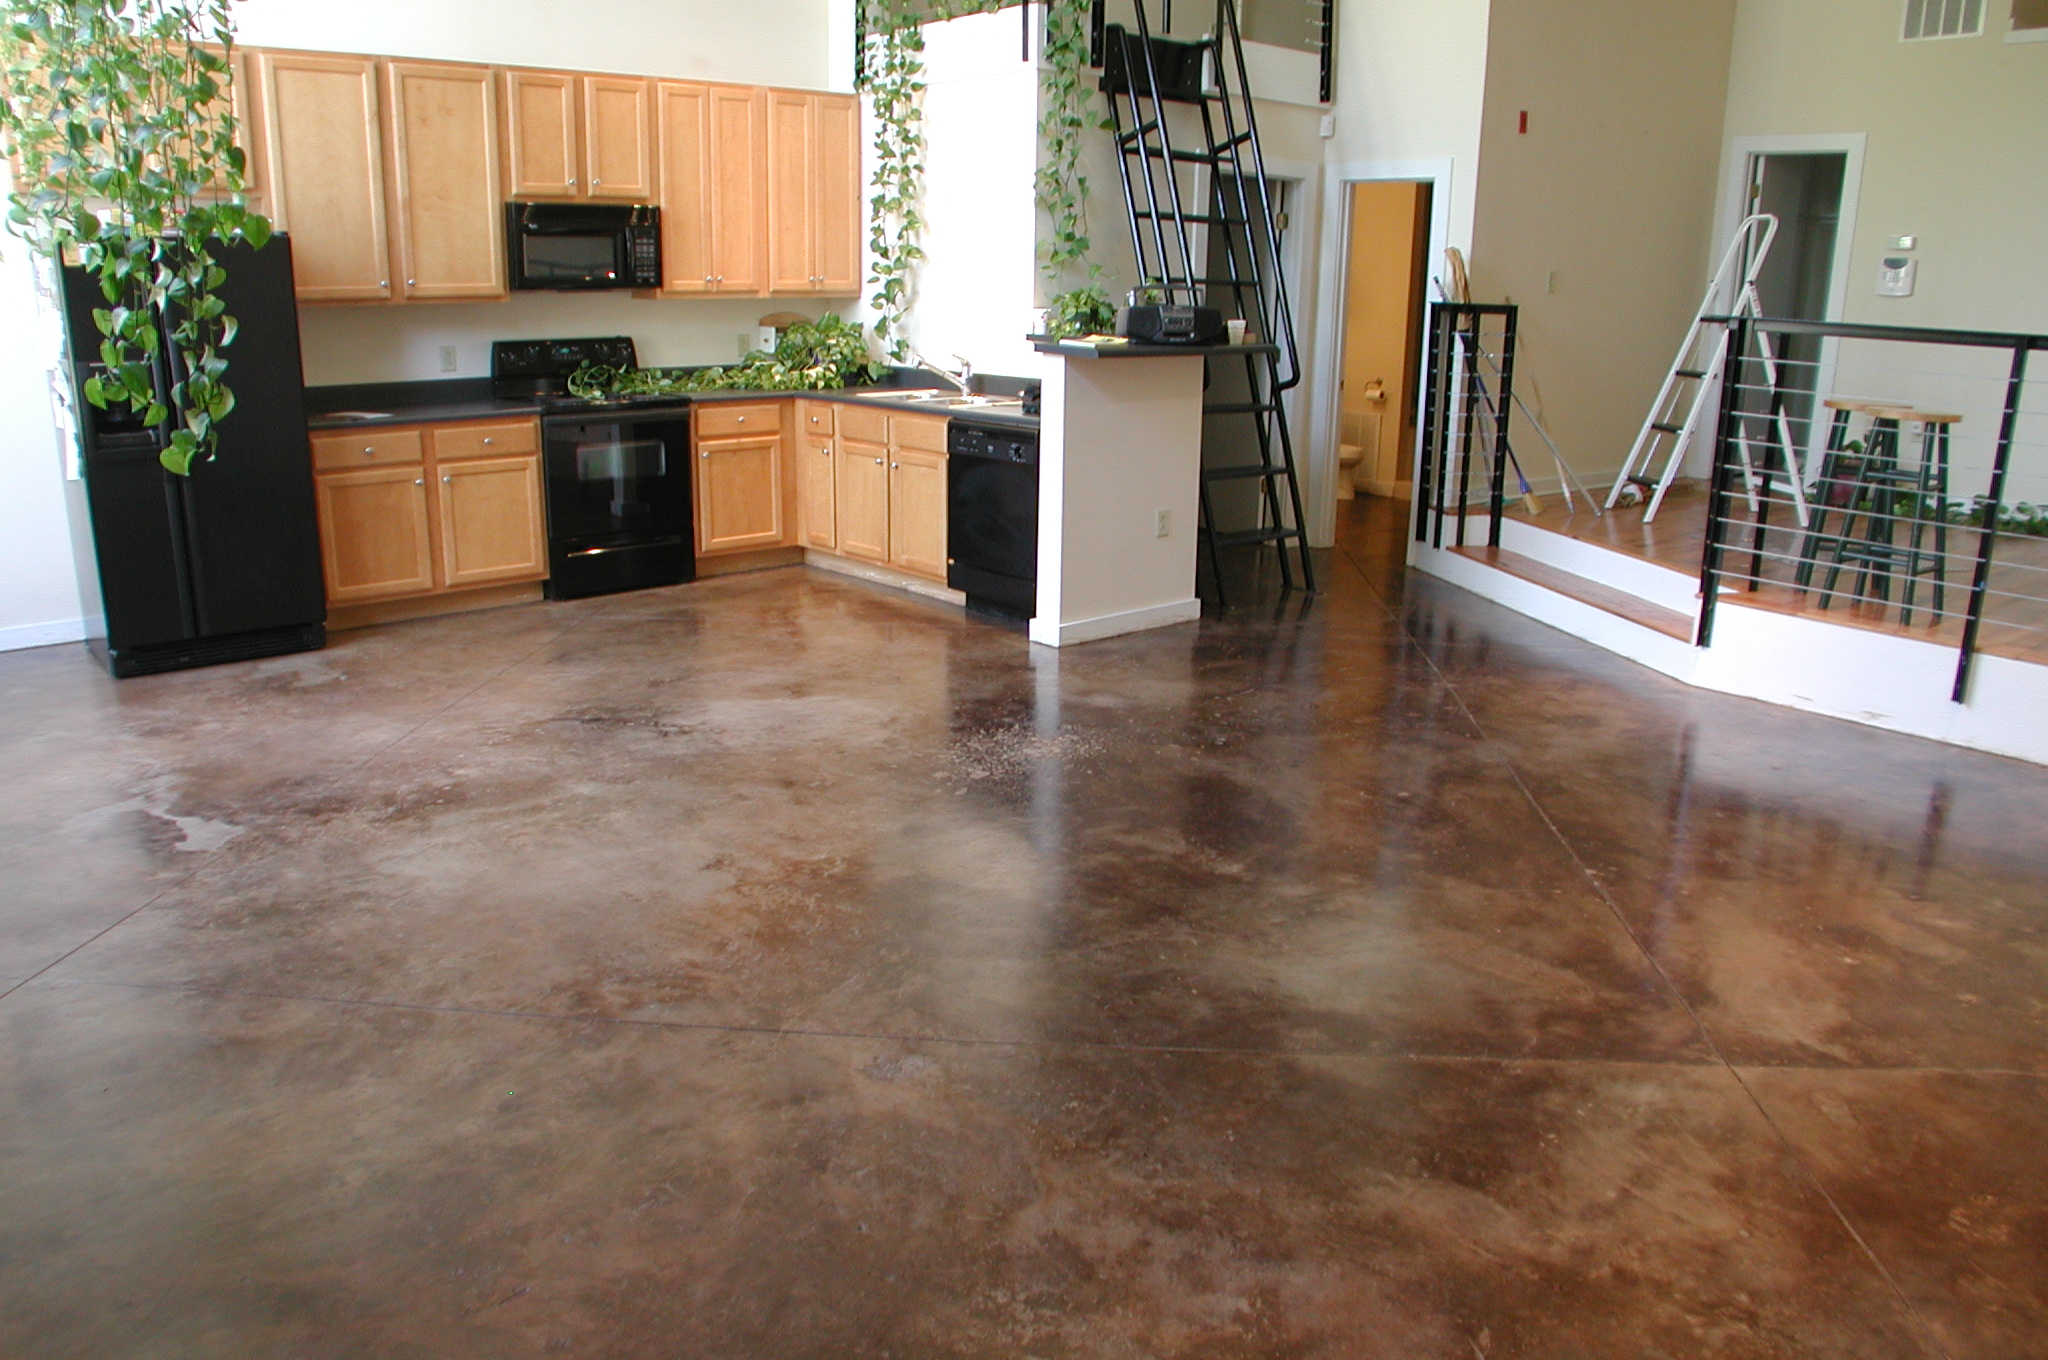 The best flooring for your home interior designing ideas for Best flooring material